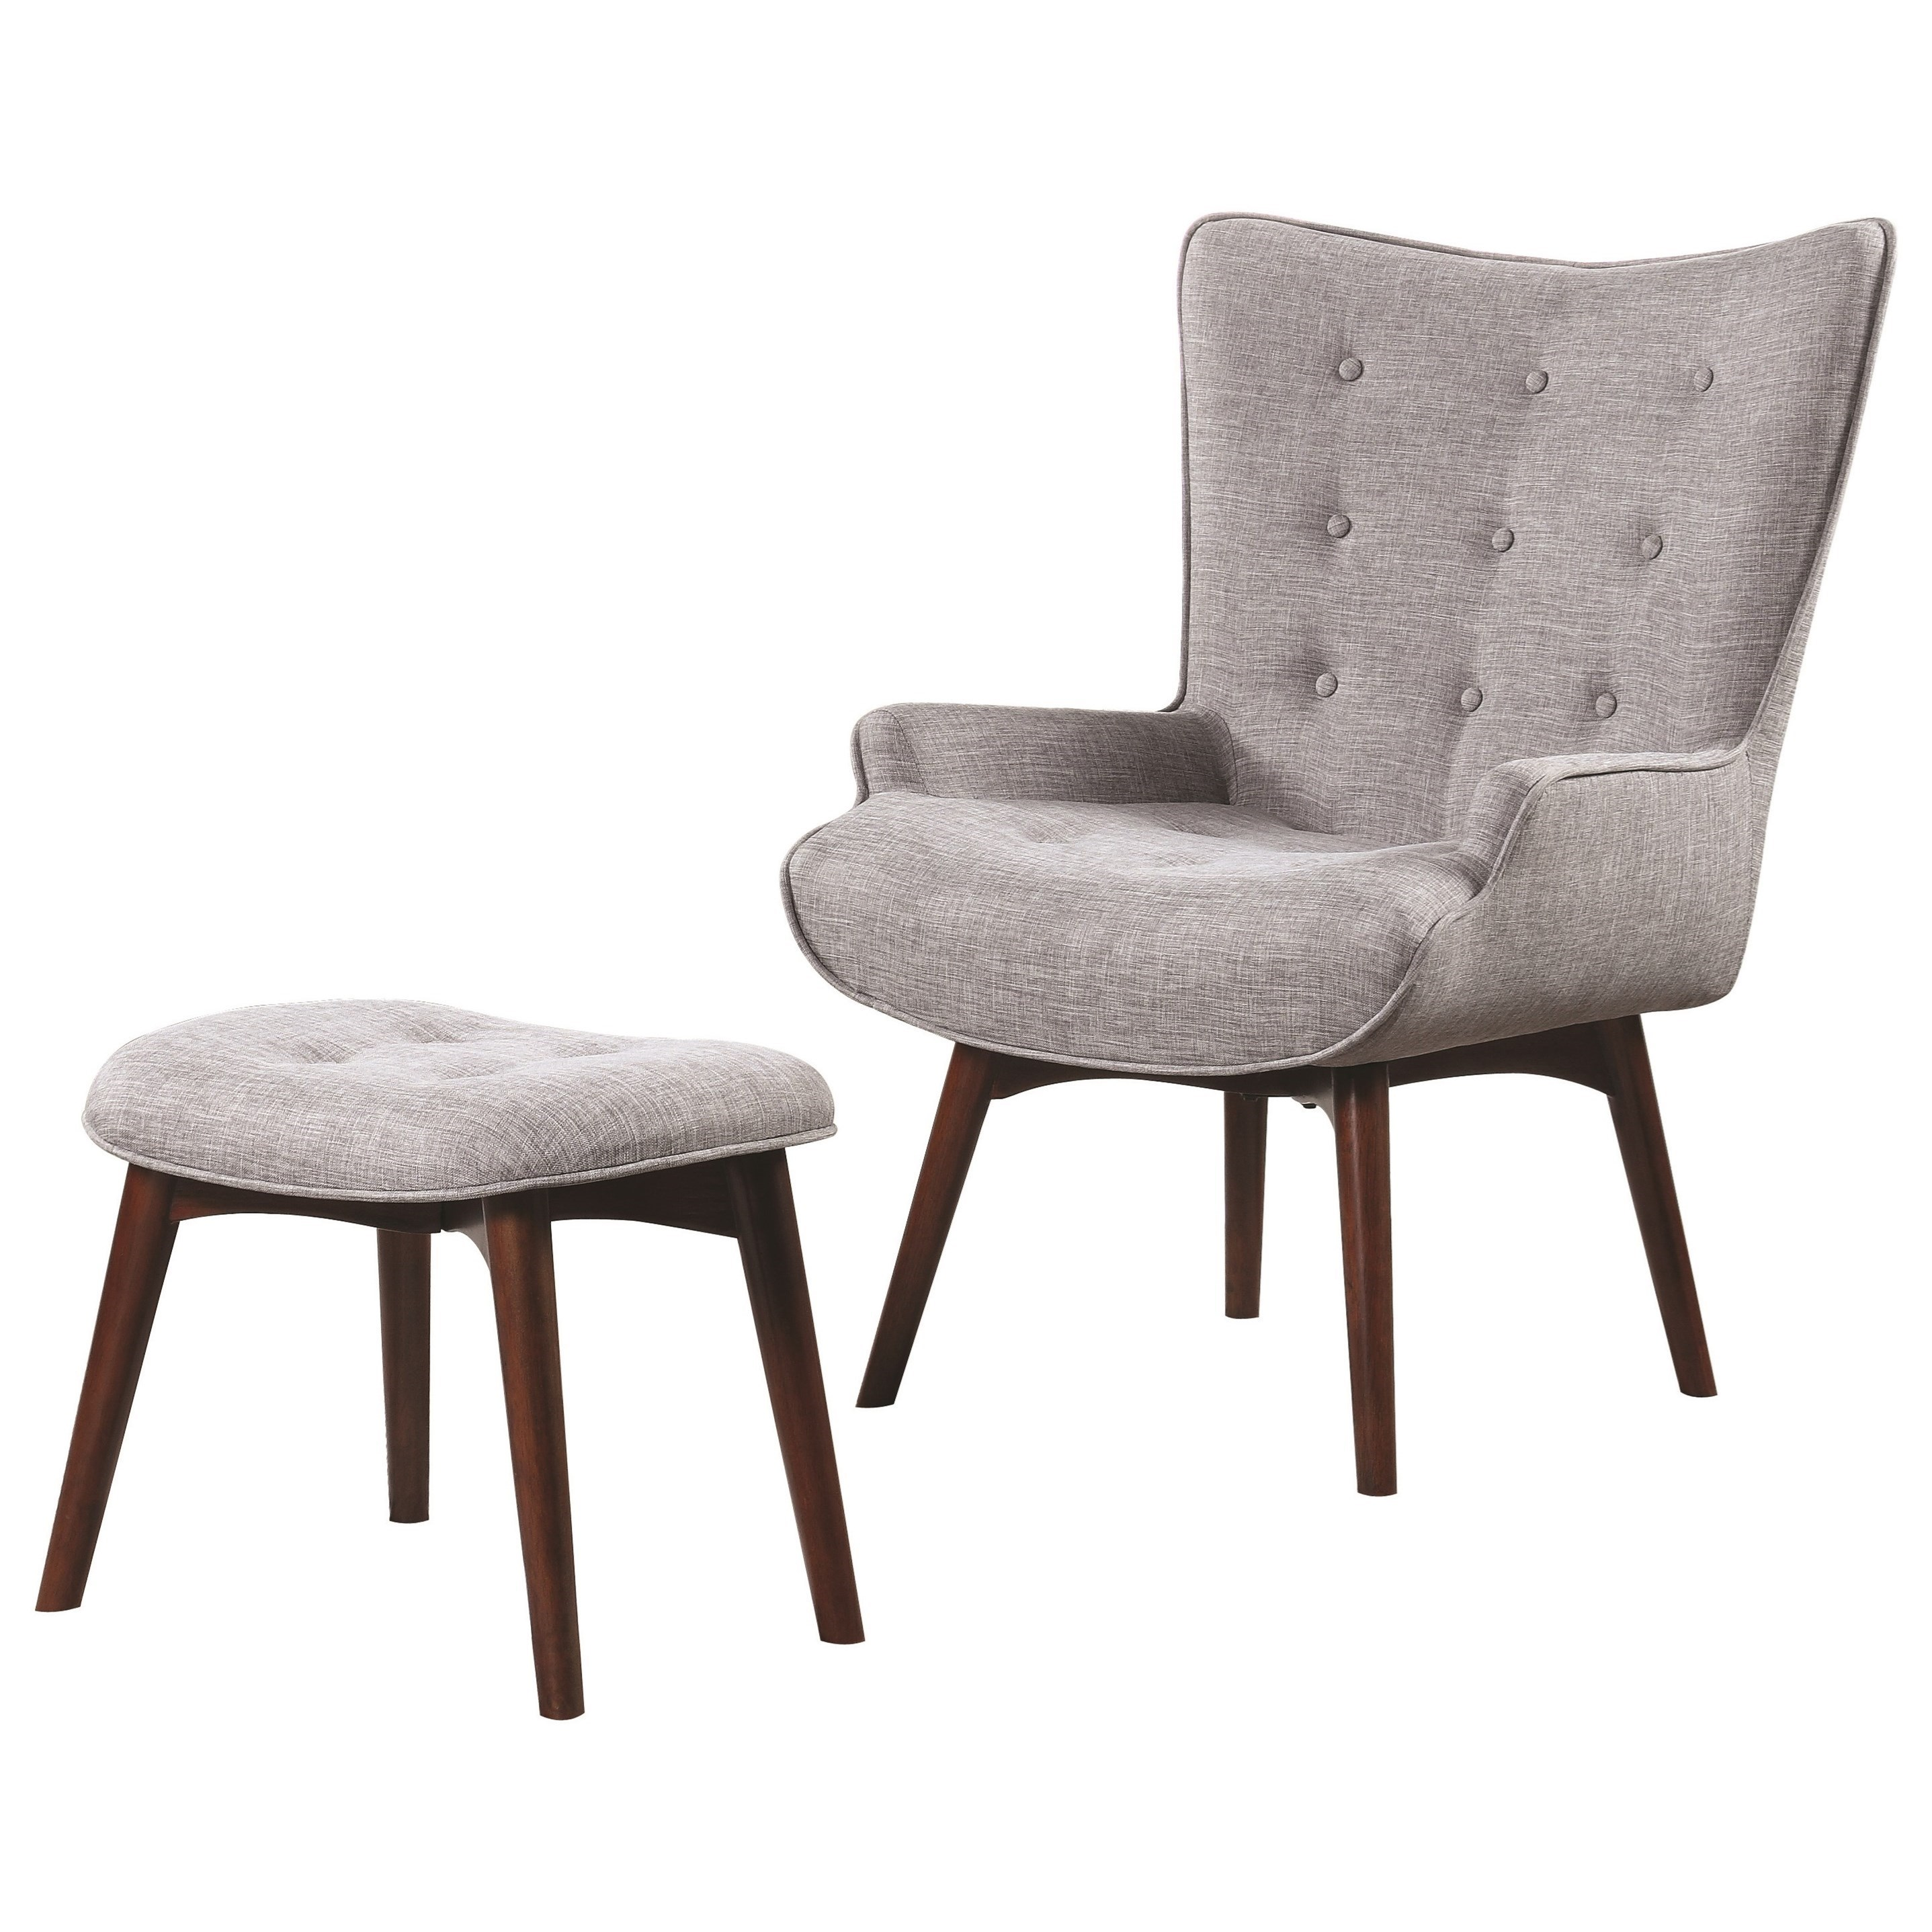 modern accent chairs office chair for heavy person scott living 903820 mid century with ottoman ruby gordon home sets